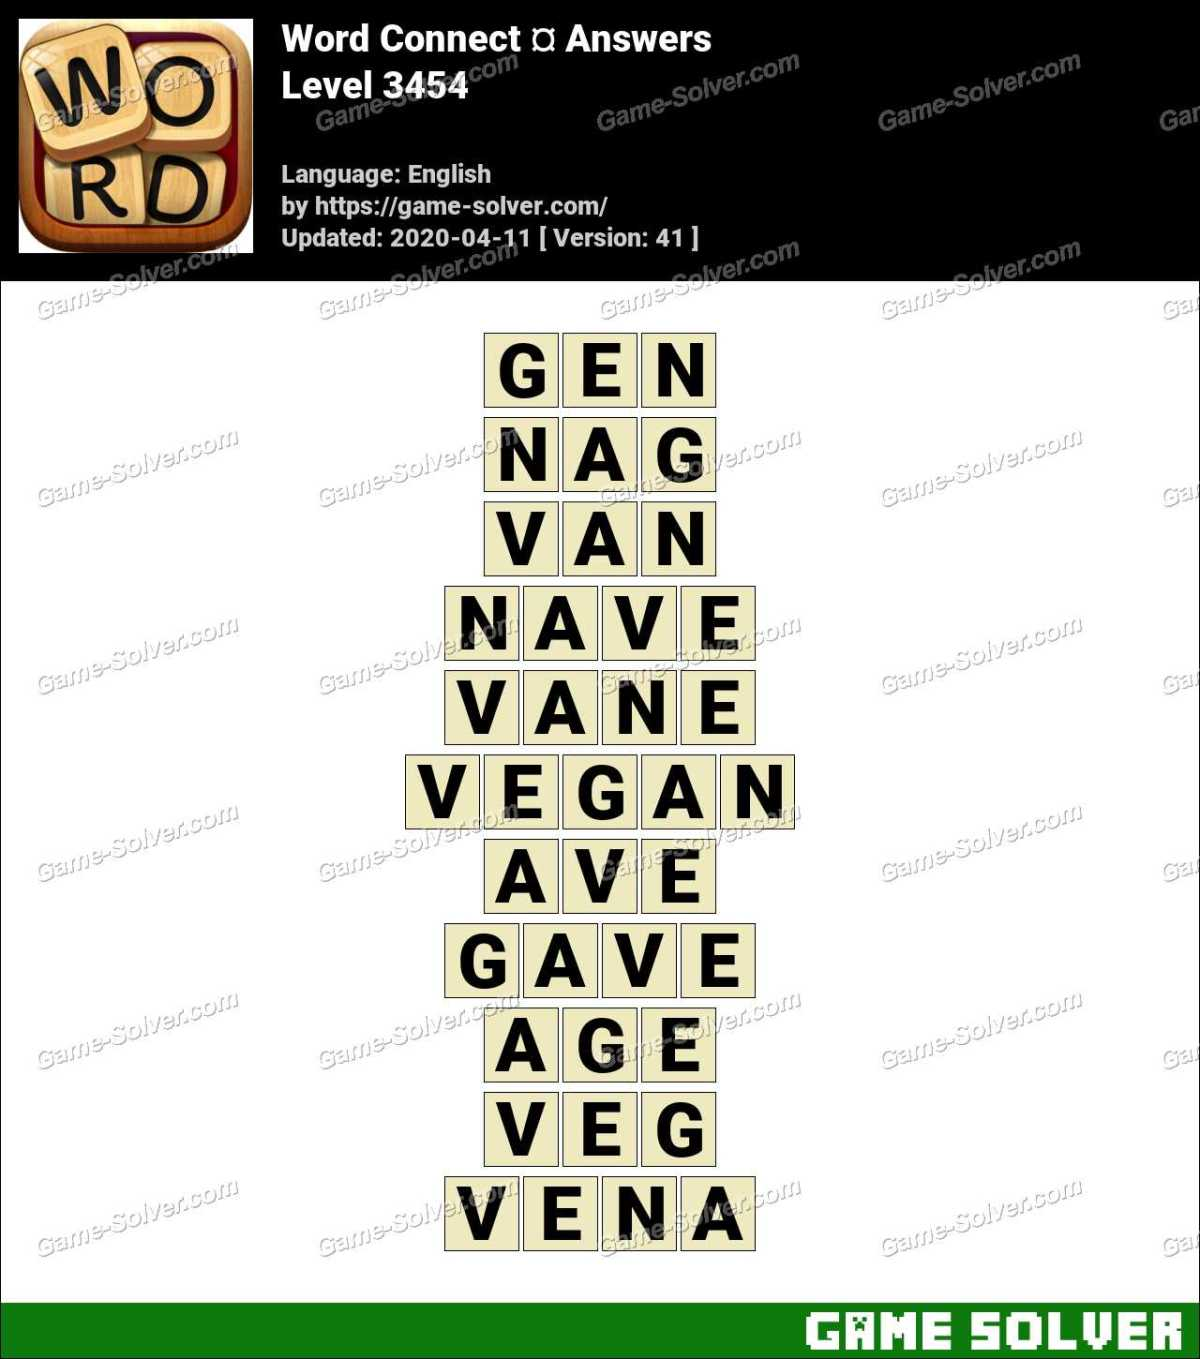 Word Connect Level 3454 Answers